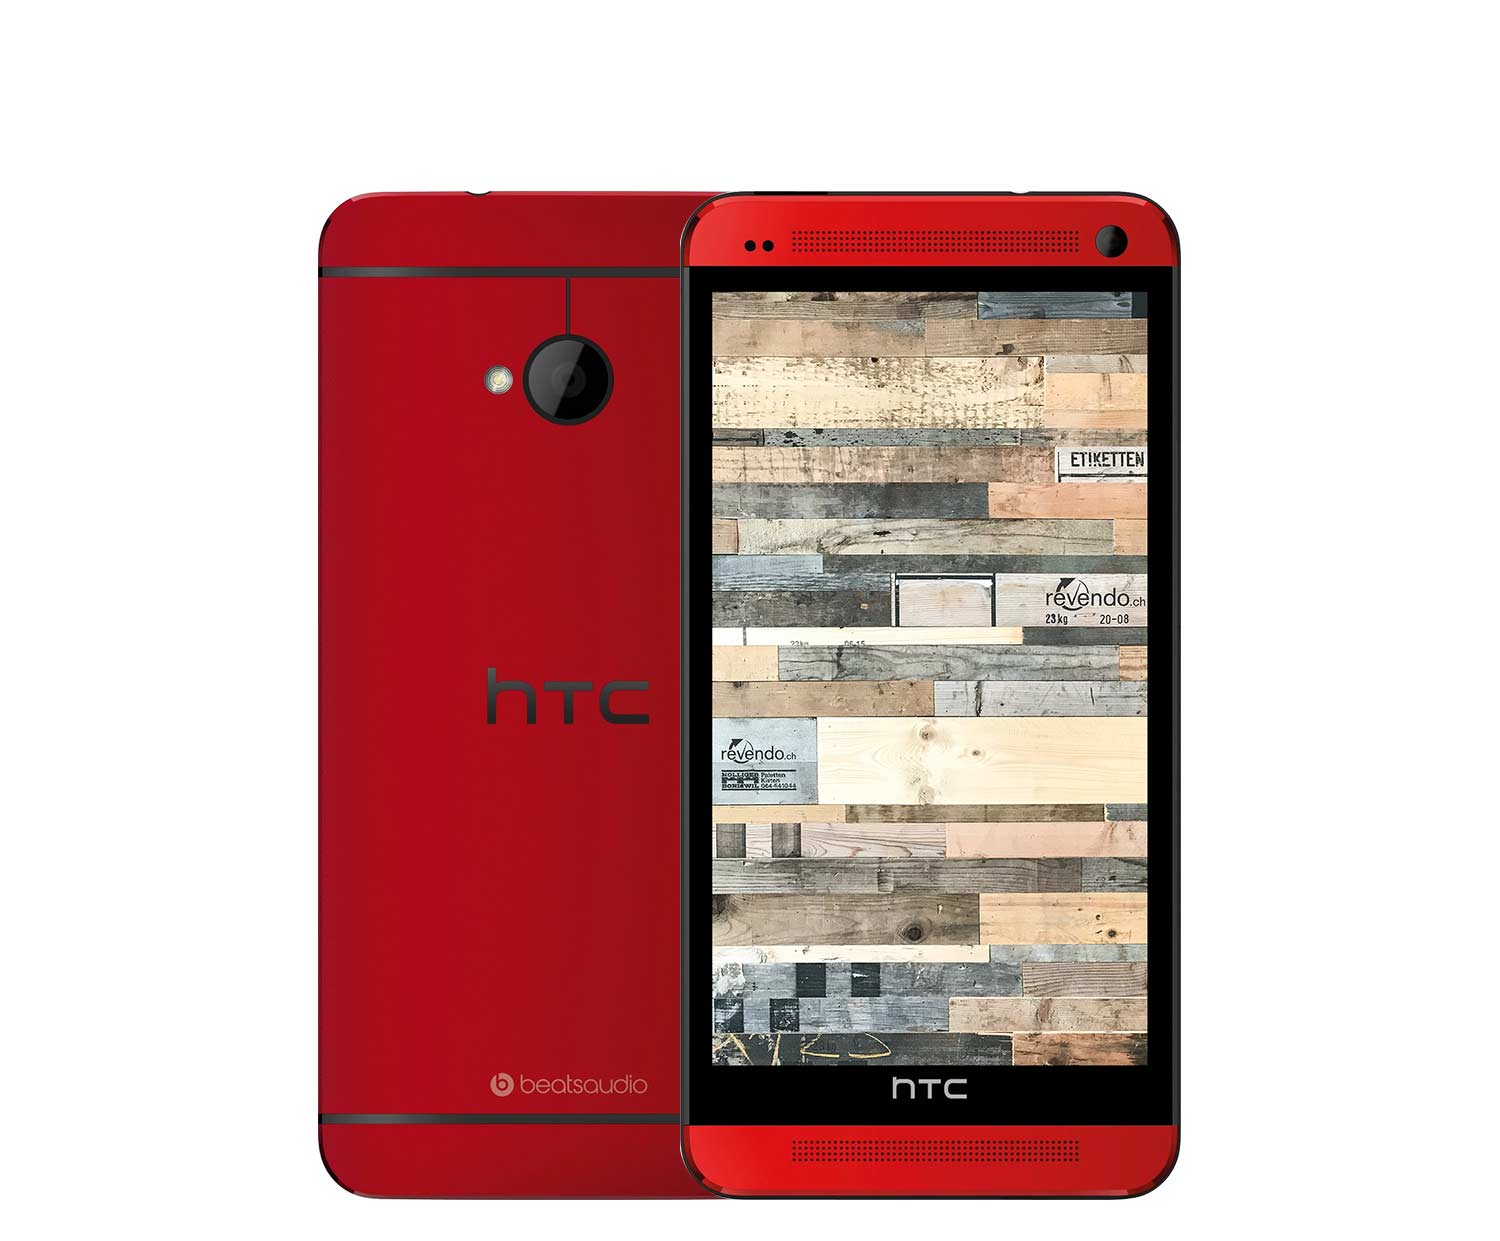 htc one m7 32 gb rot. Black Bedroom Furniture Sets. Home Design Ideas